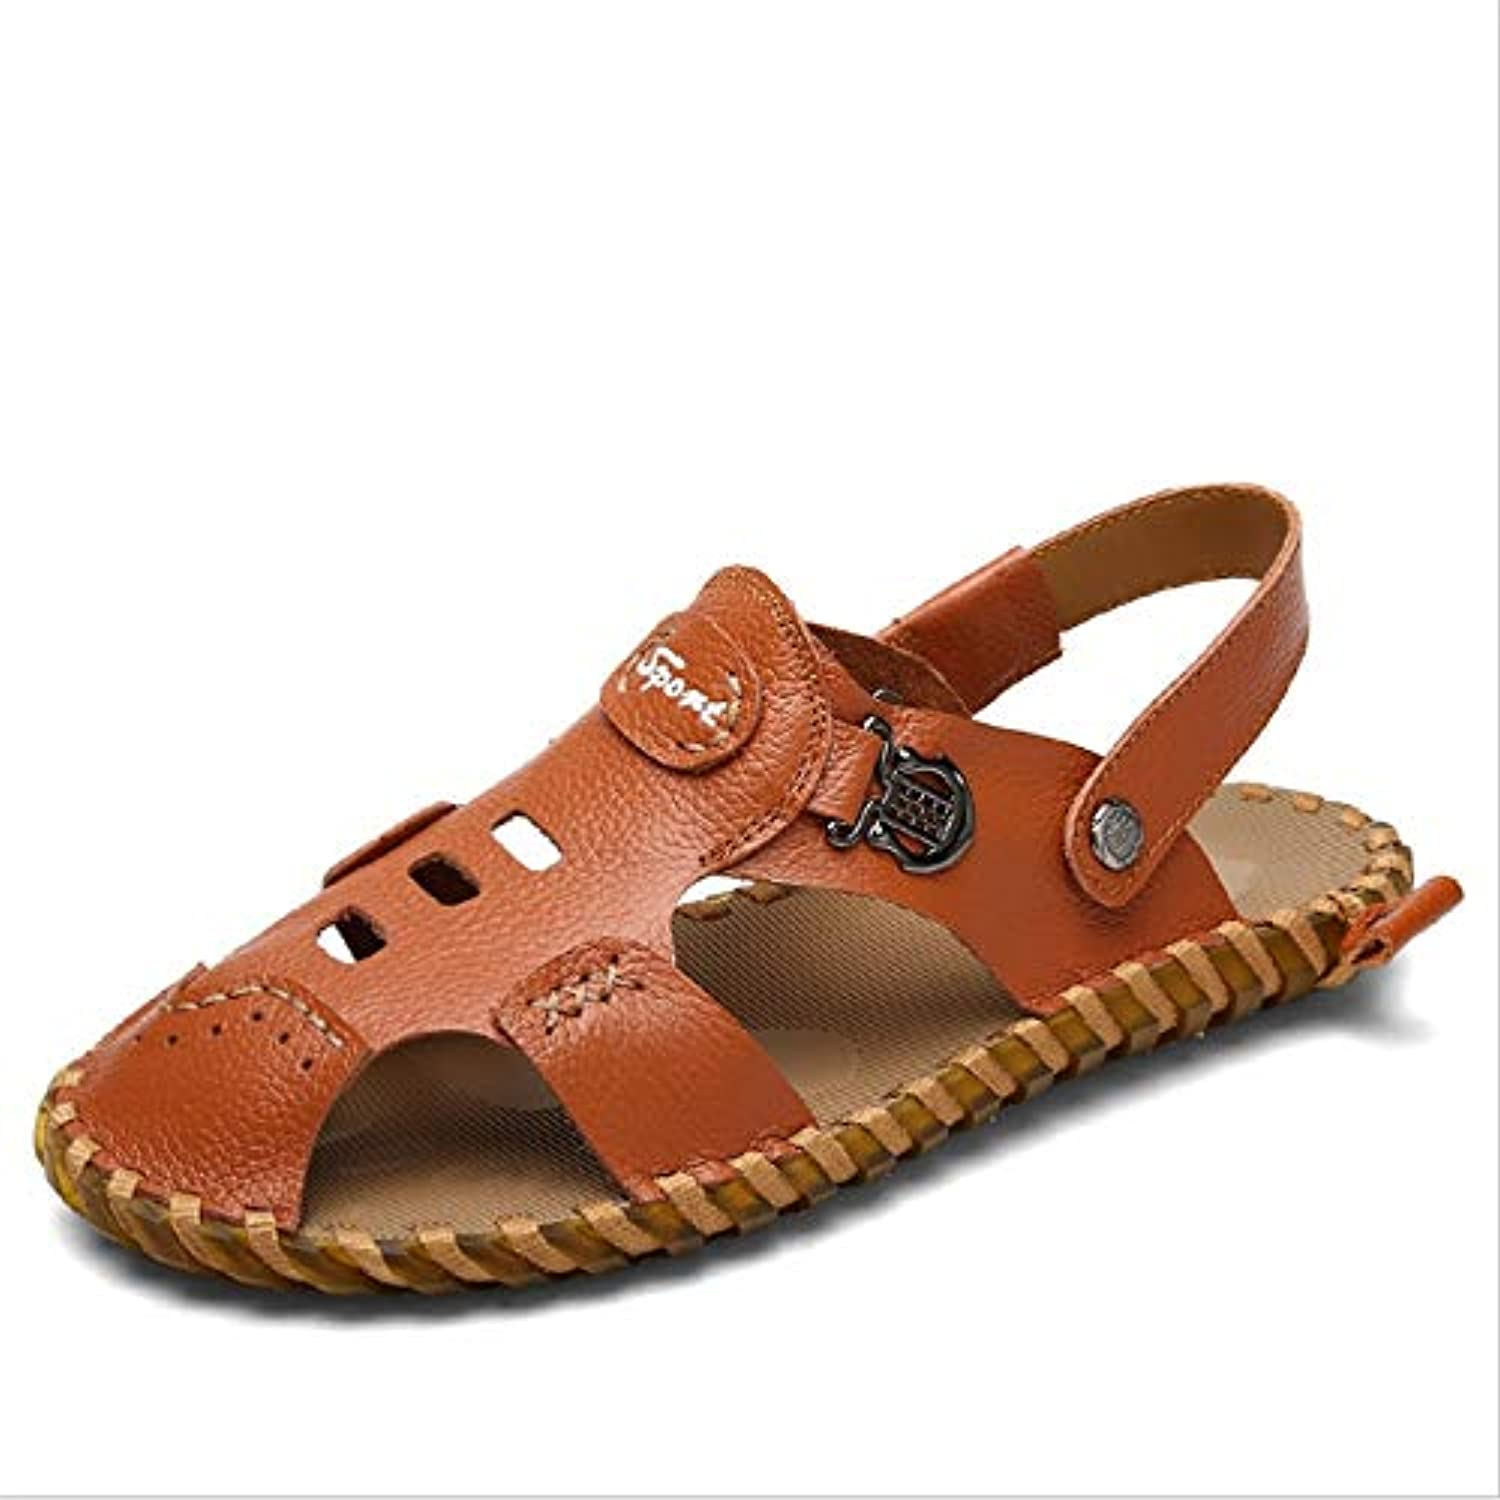 Wangcui Hommes D De Anti Plein Air Sandal Sports 6qUAwSZq